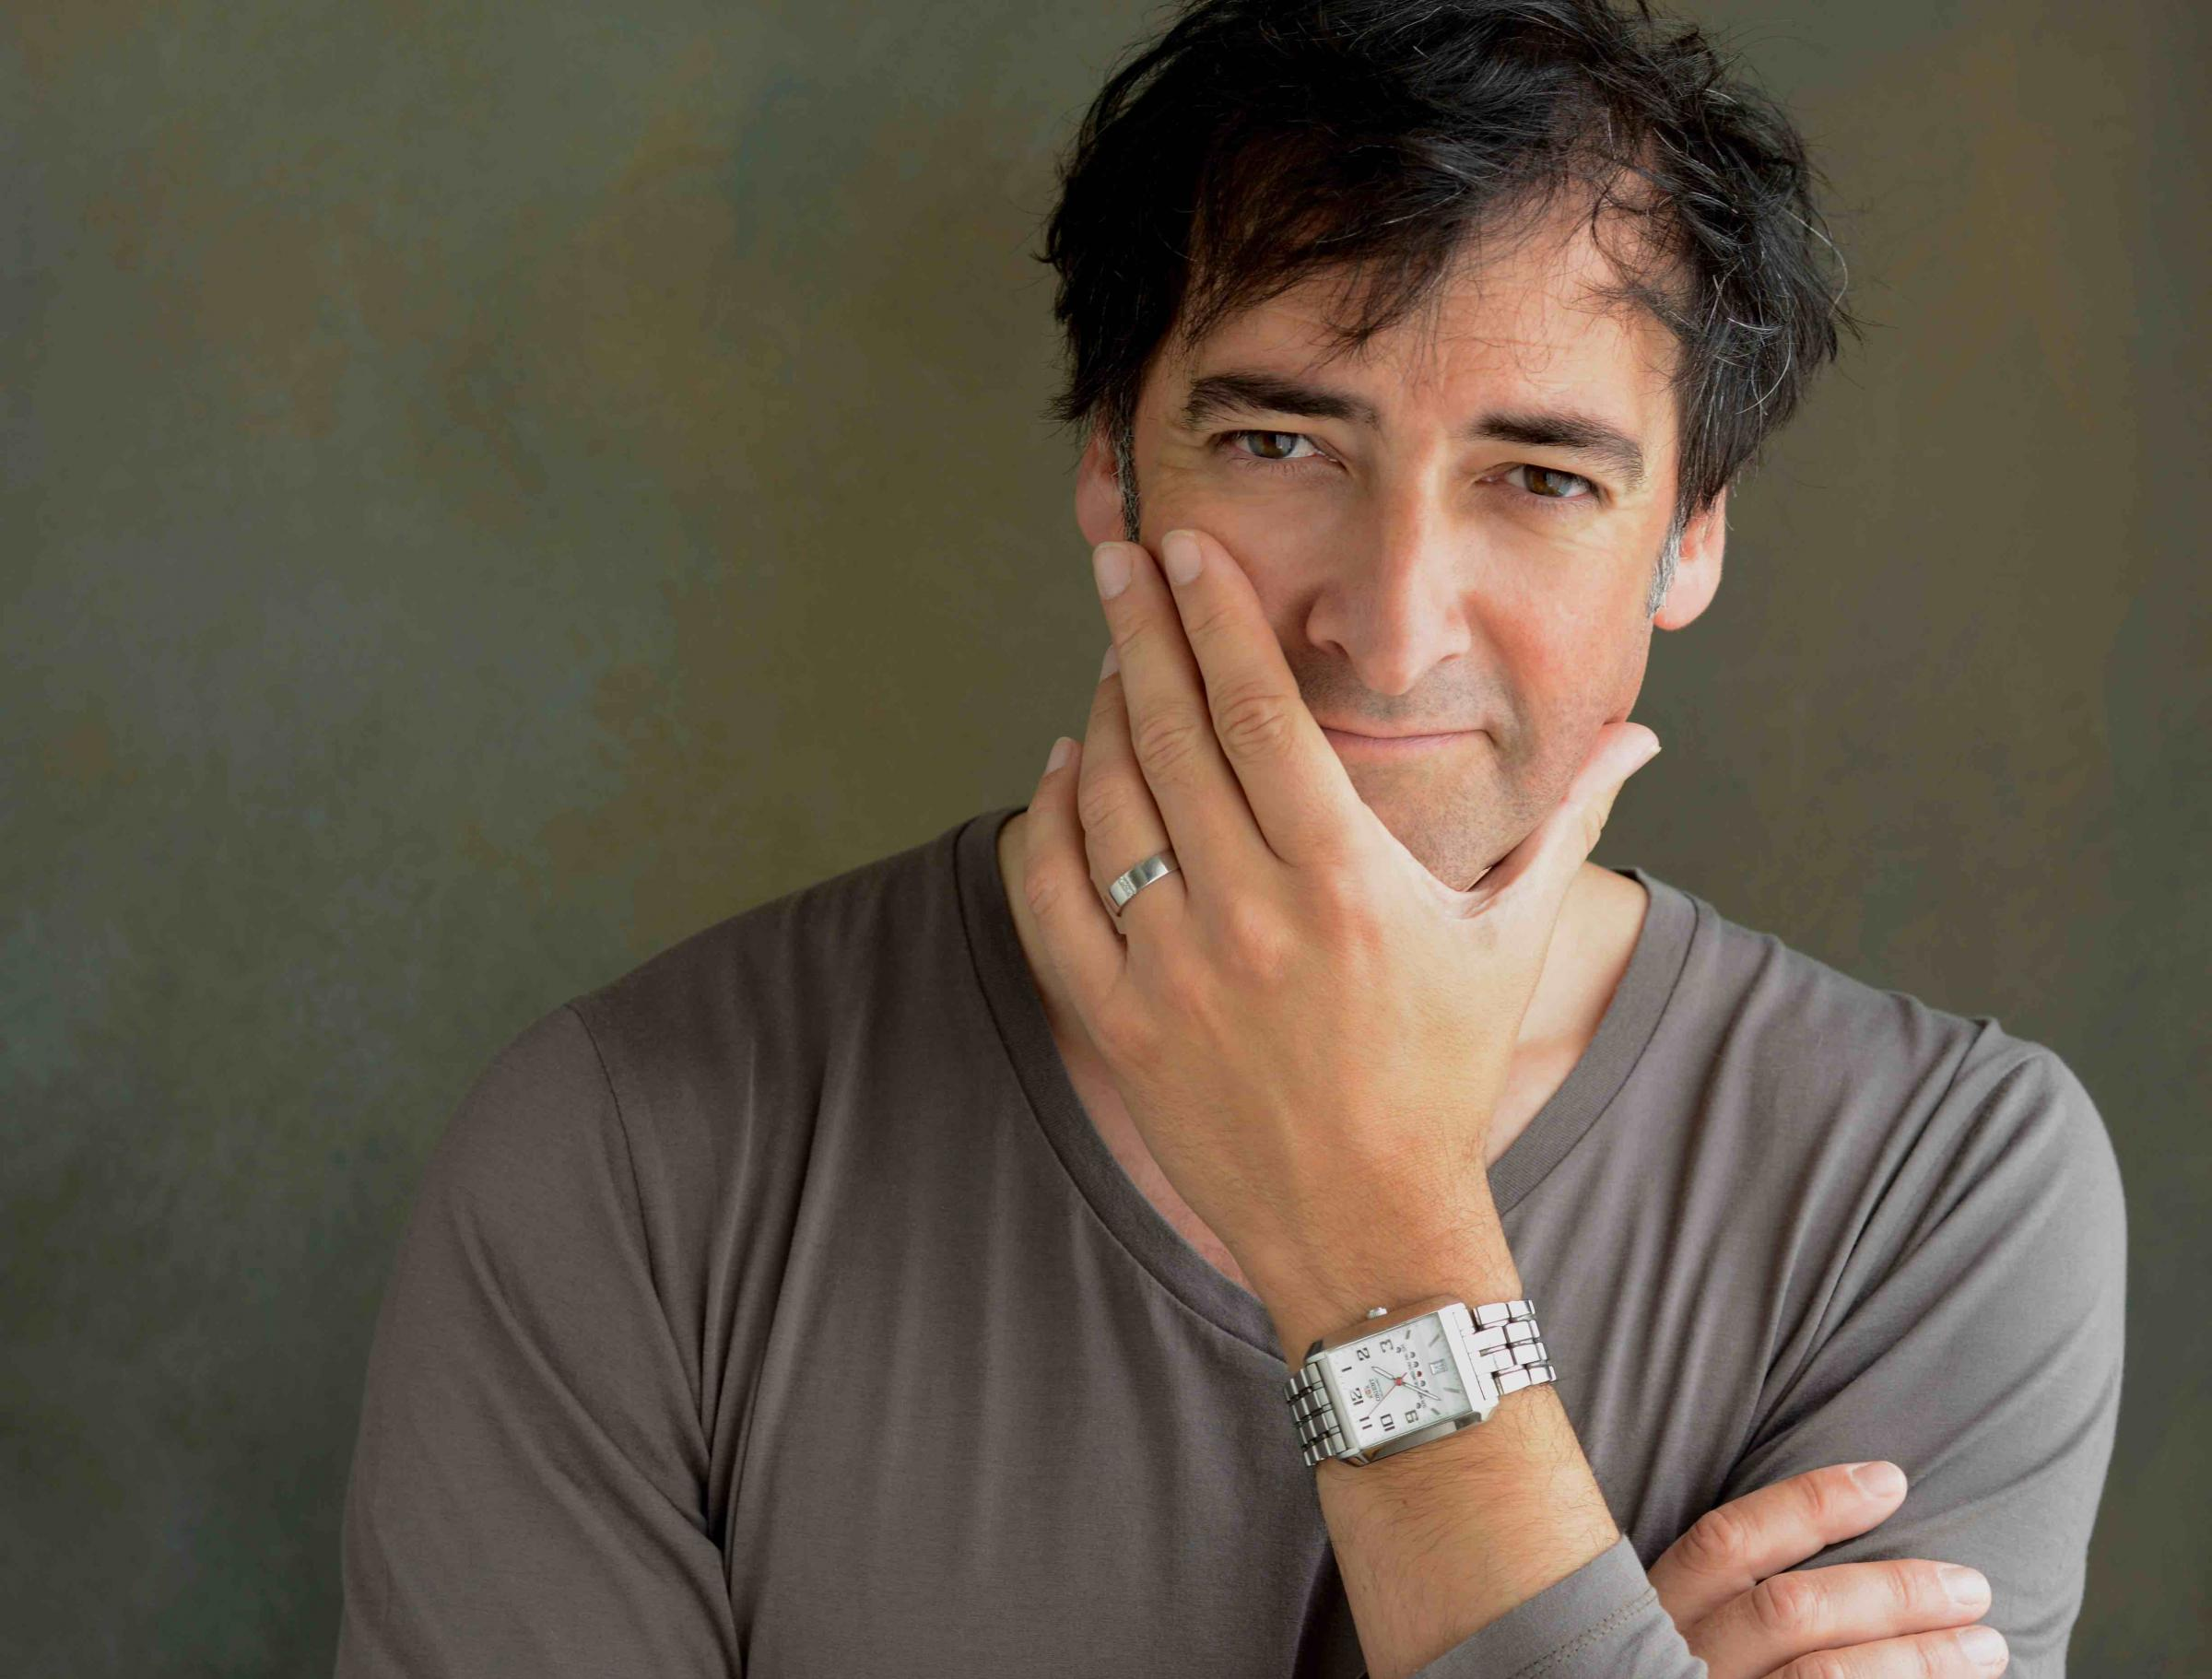 Comedian Alistair McGowan to host fifth Asian Awards